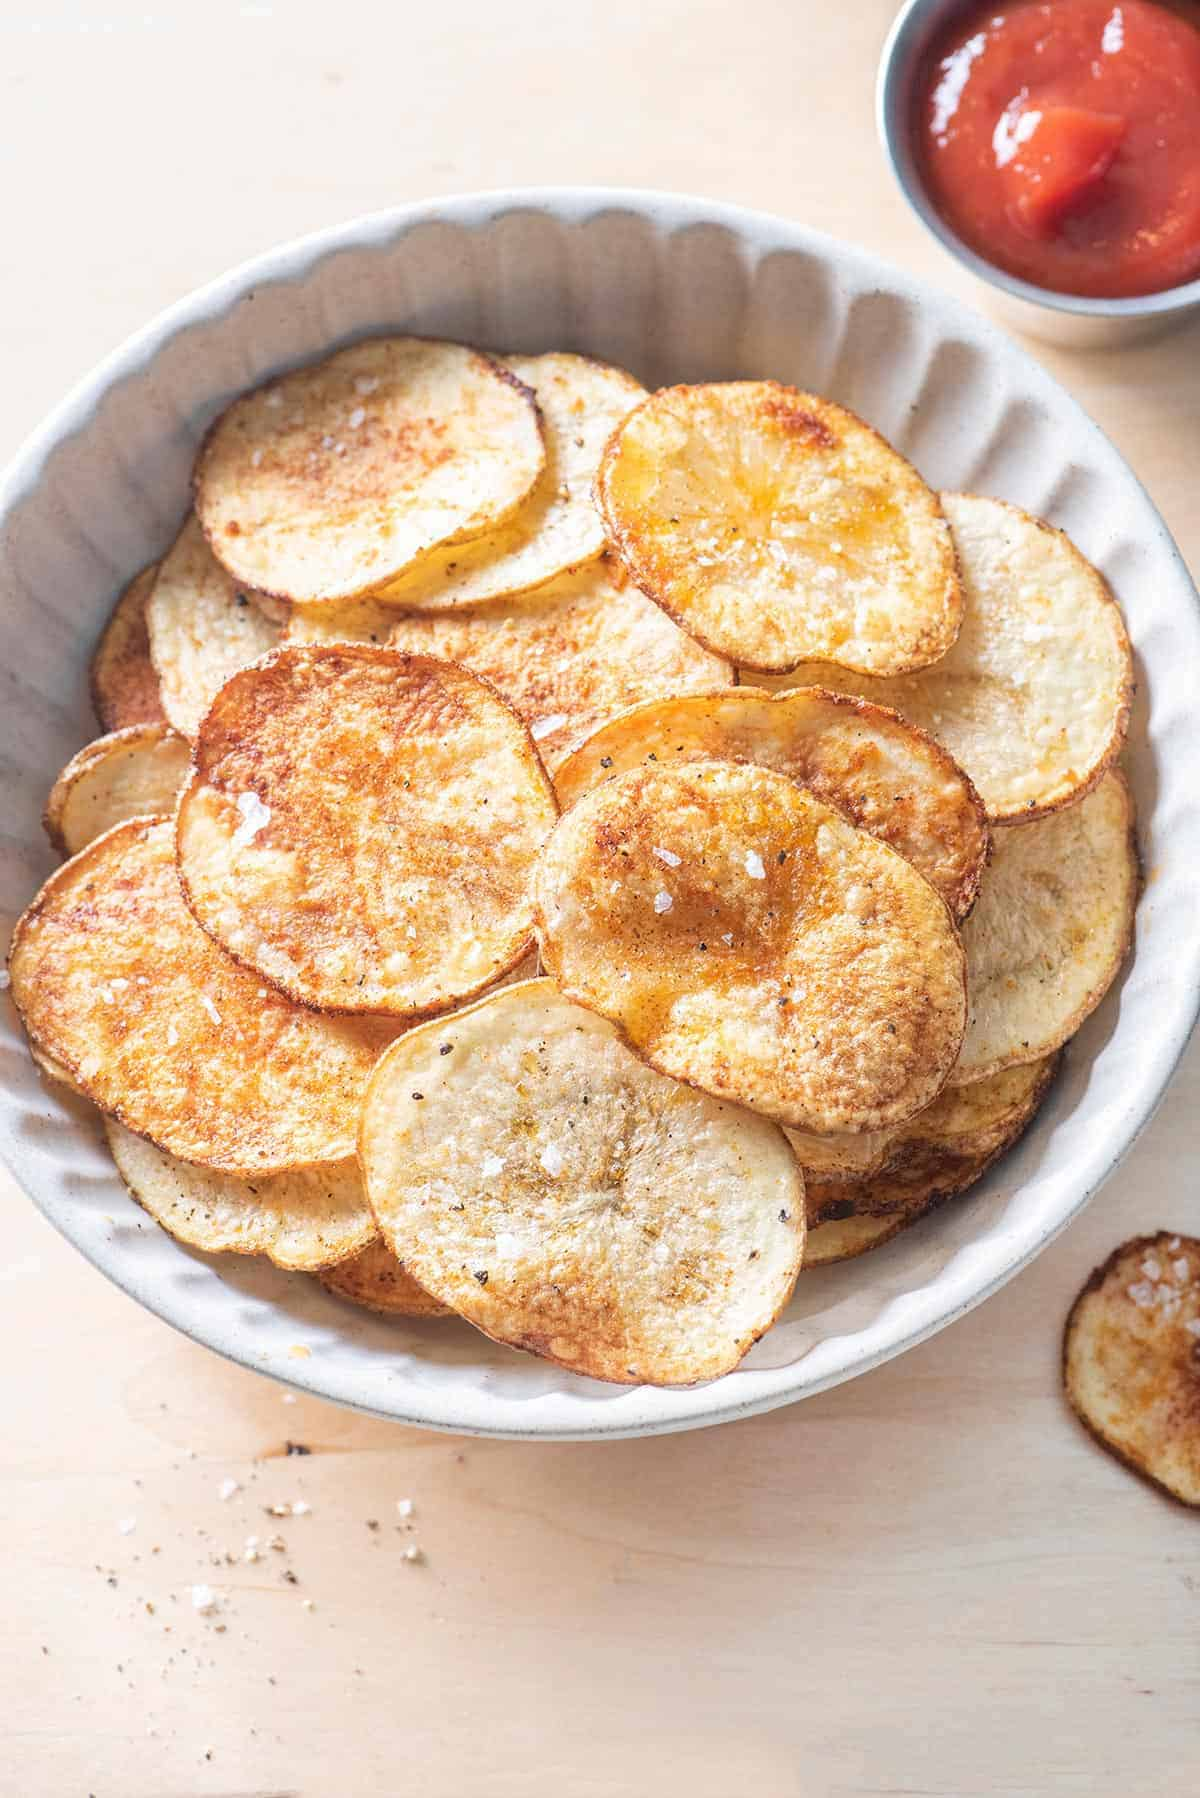 Overhead shot of the oven baked potato chips with ketchup on the side